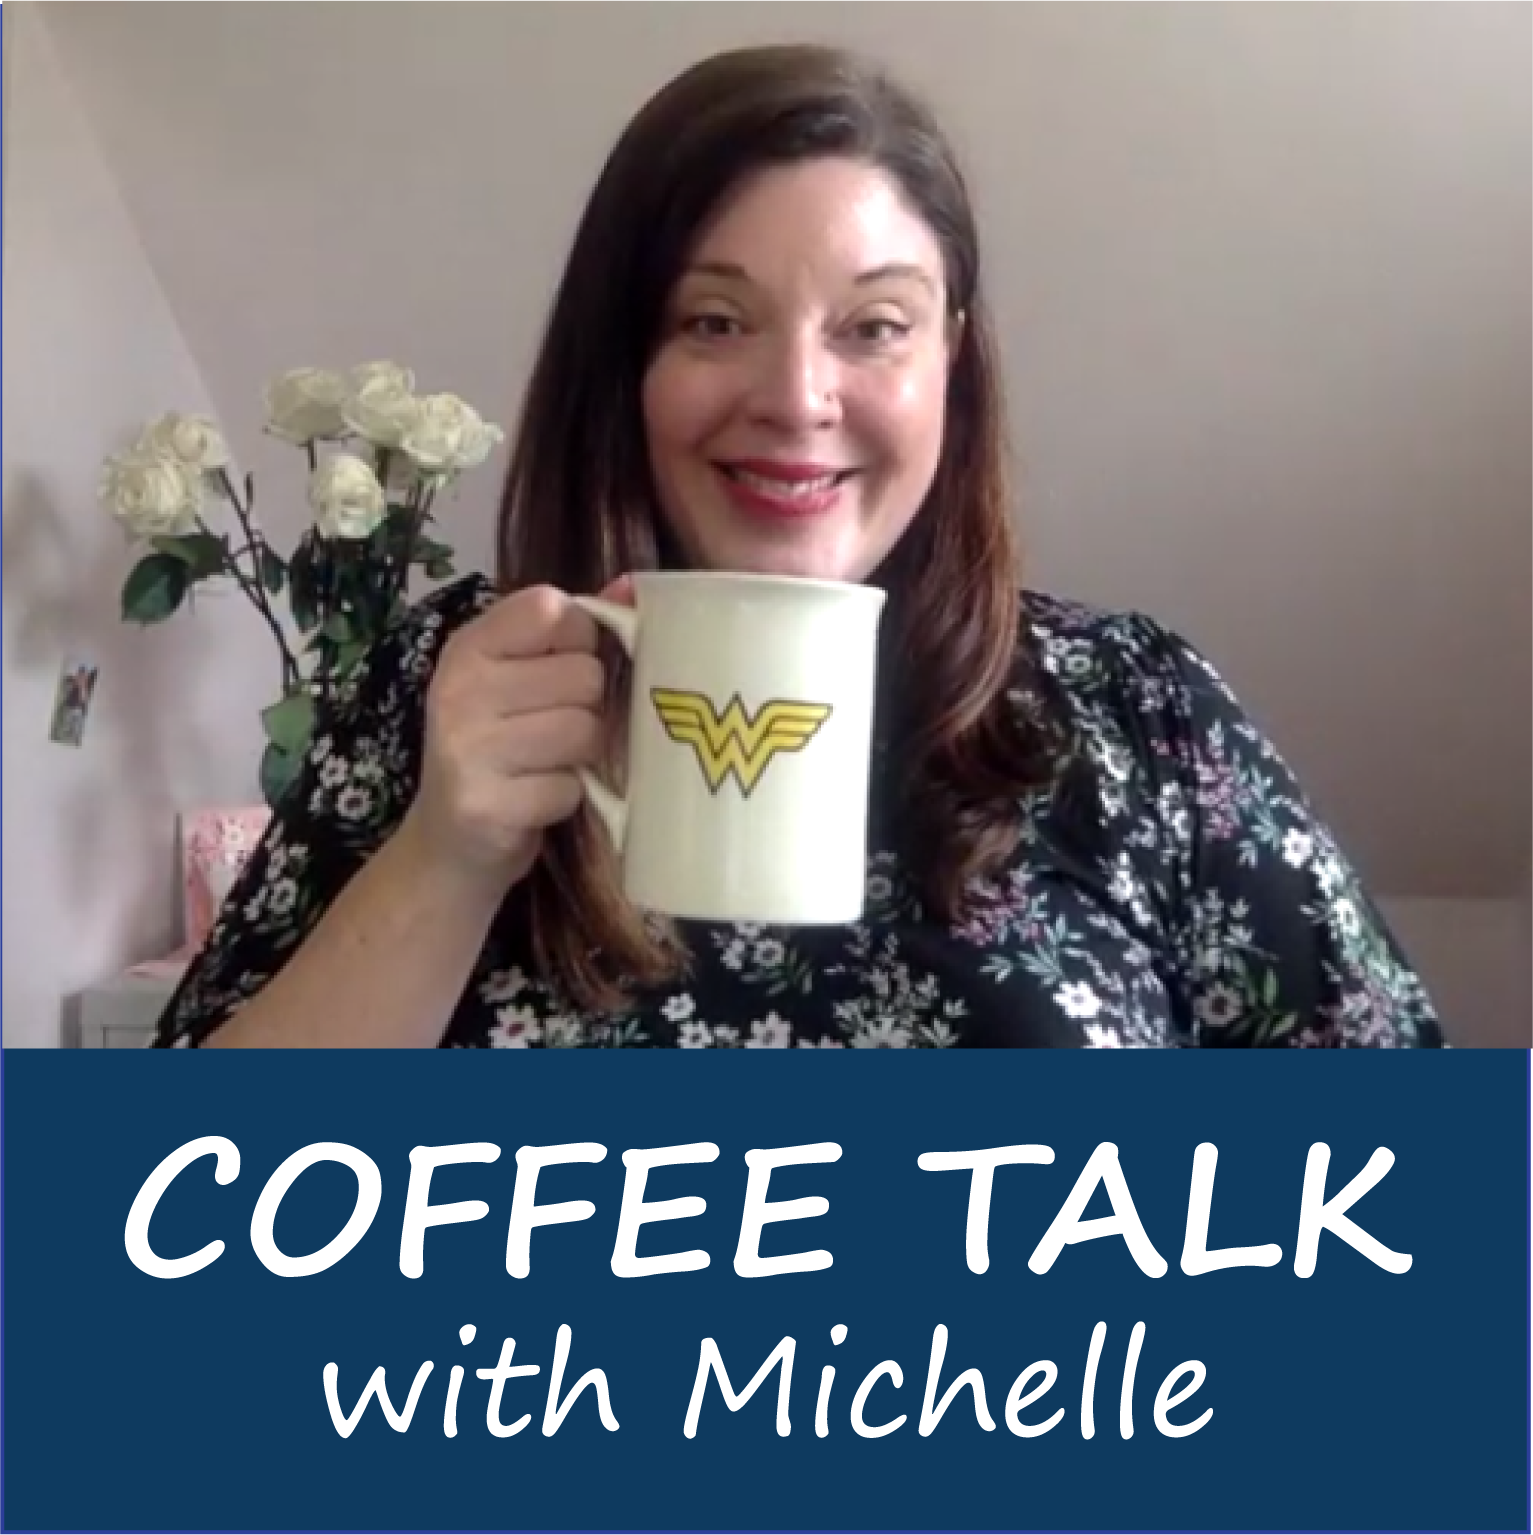 Coffee Talk with Michelle